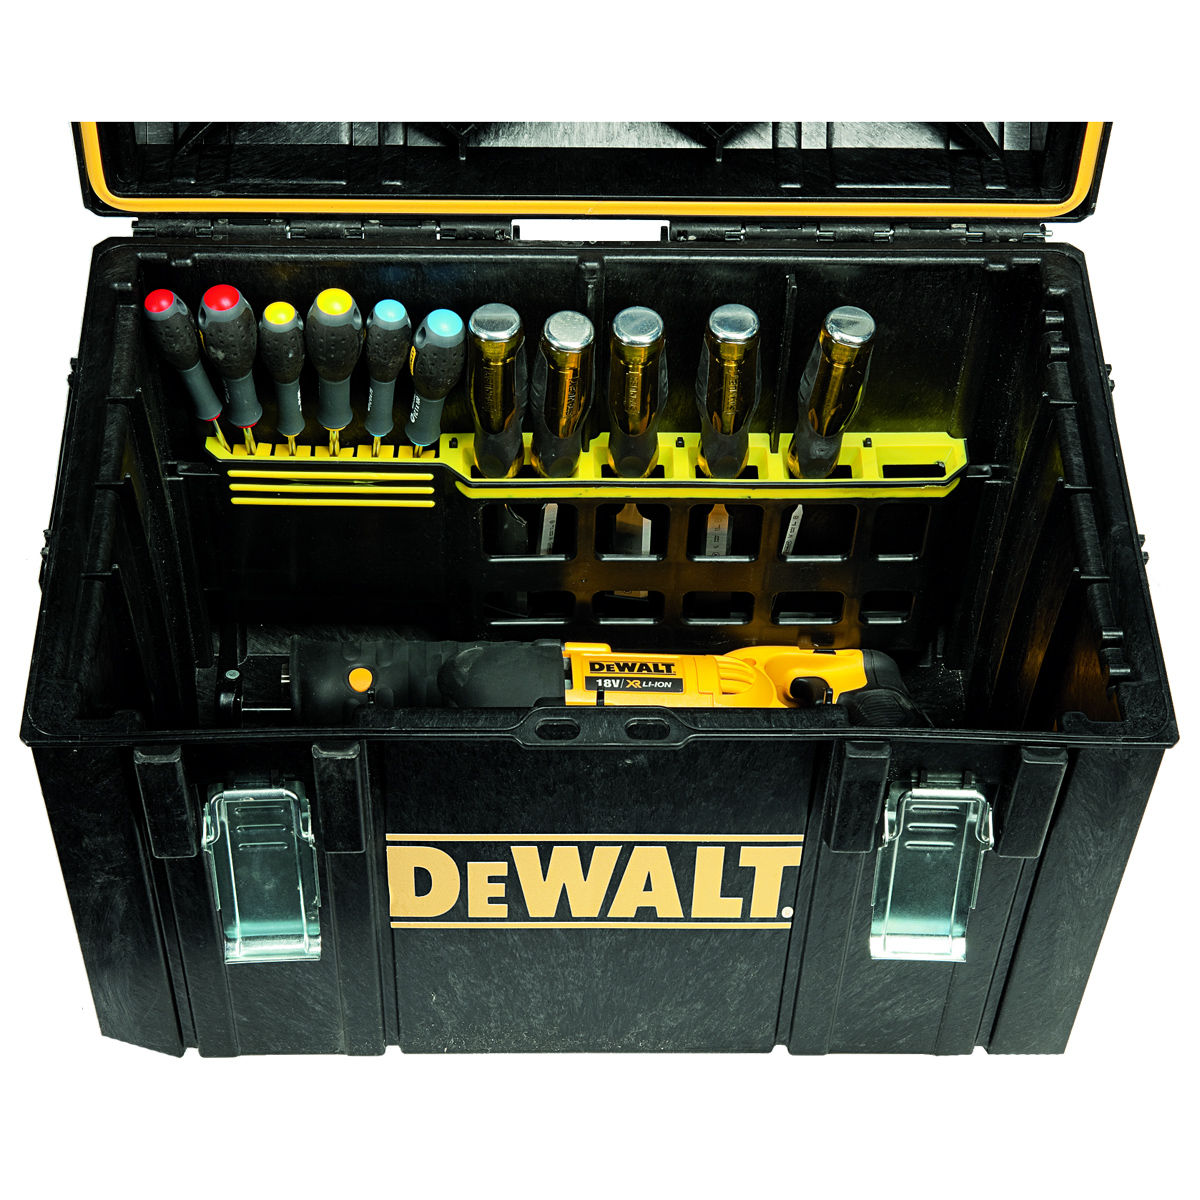 Toolstop Dewalt 1 70 323 Ds400 Toughsystem Tool Box